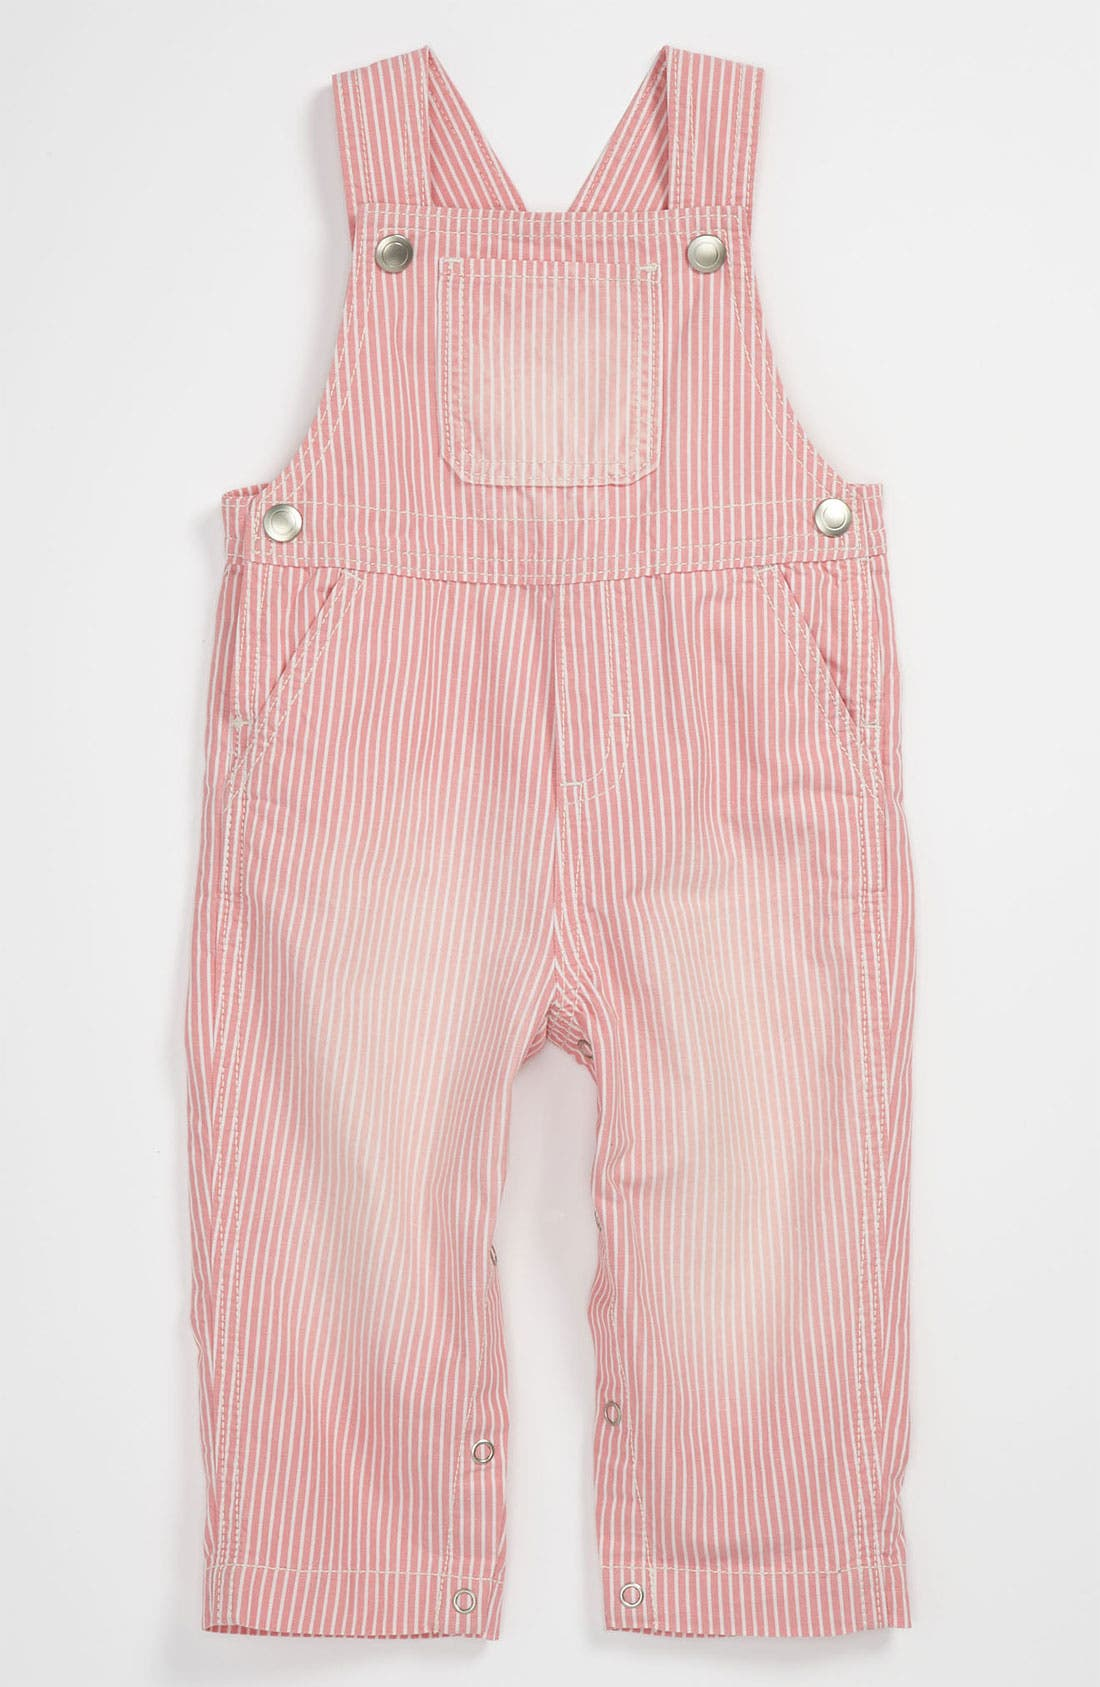 Alternate Image 1 Selected - Nordstrom Baby Woven Coveralls (Infant)